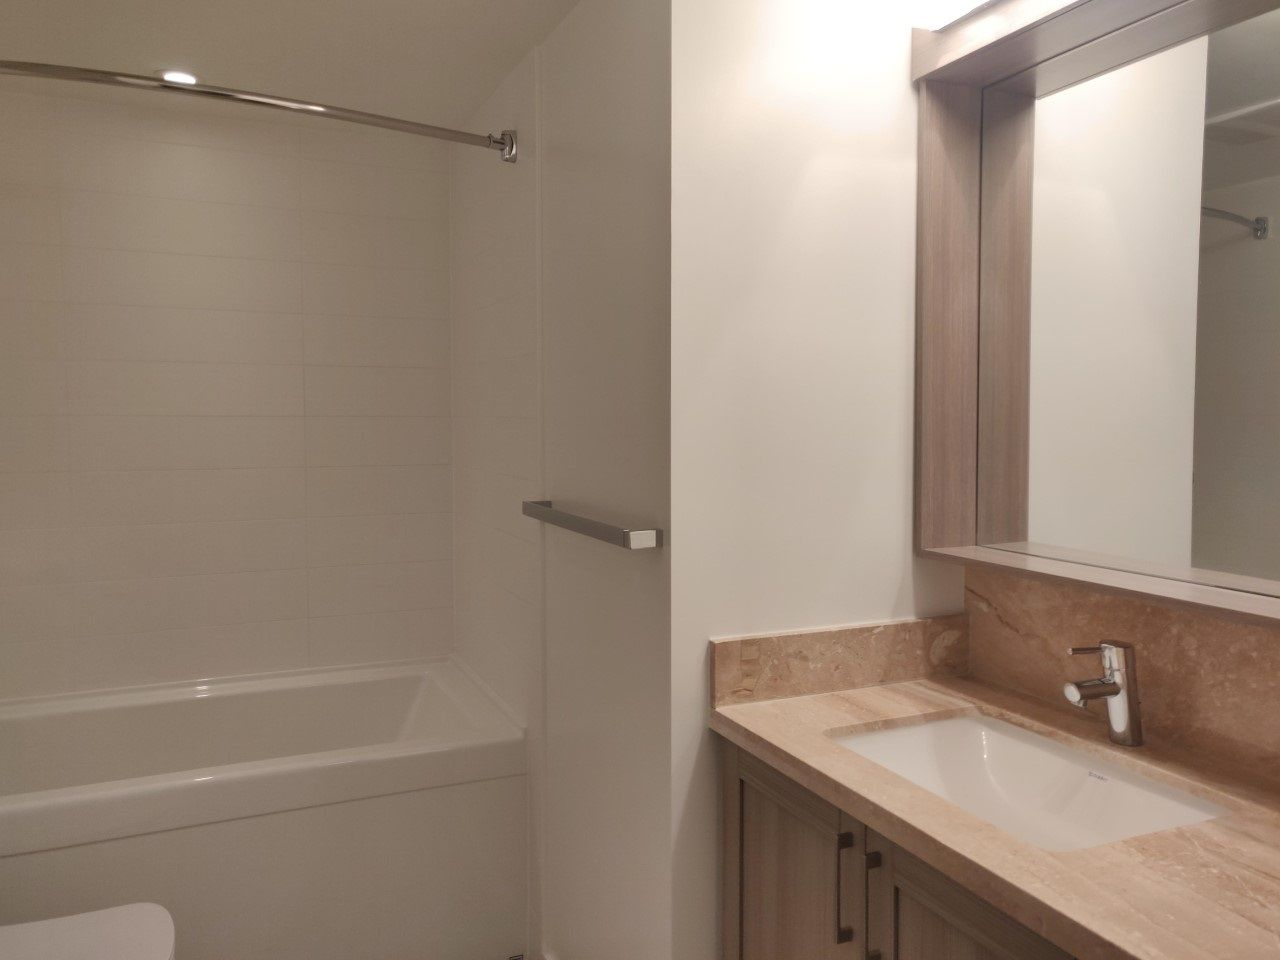 """Photo 10: Photos: 205 5515 BOUNDARY Road in Vancouver: Collingwood VE Condo for sale in """"WALL CENTER CETNRAL PARK"""" (Vancouver East)  : MLS®# R2516109"""